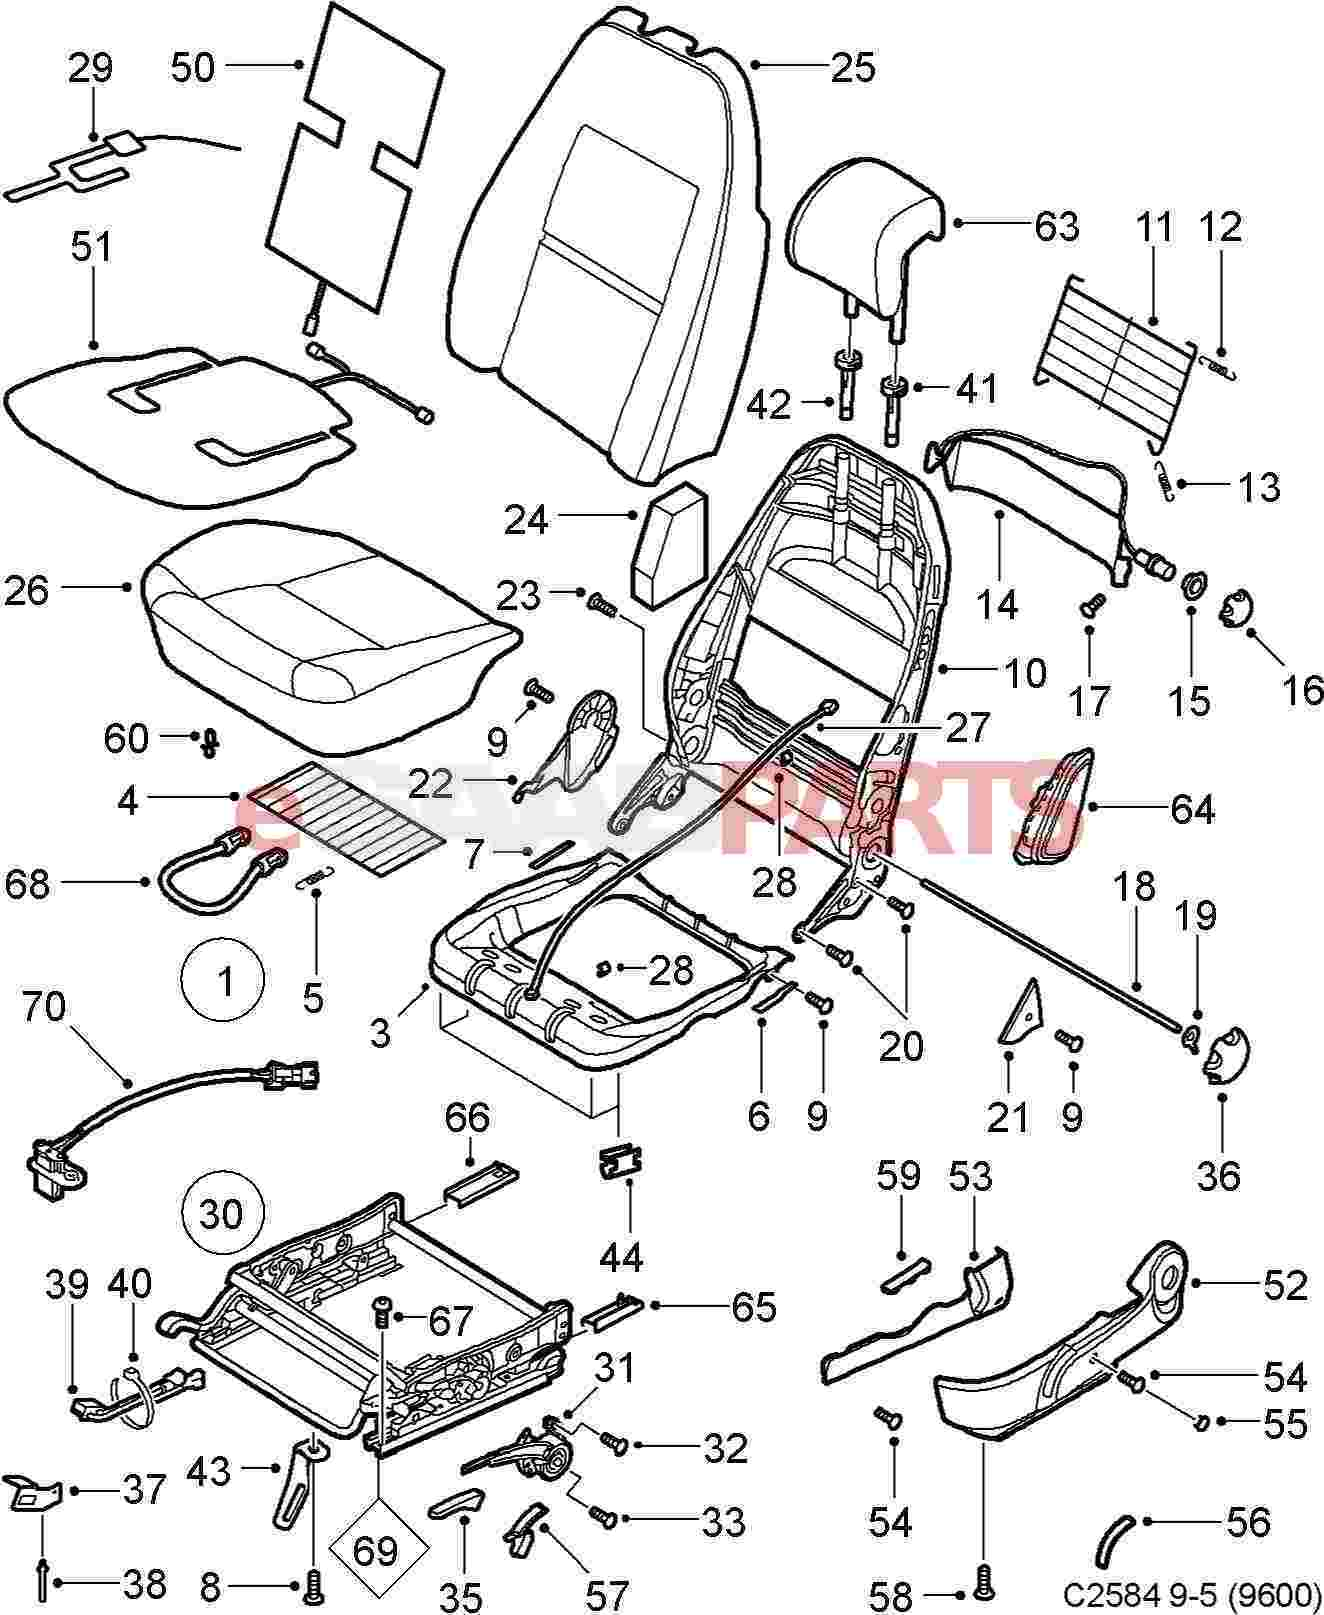 eSaabParts.com - Saab 9-5 (9600) > Car Body: Internal Parts > Seat  Assembly: Front > Manual Front Seats